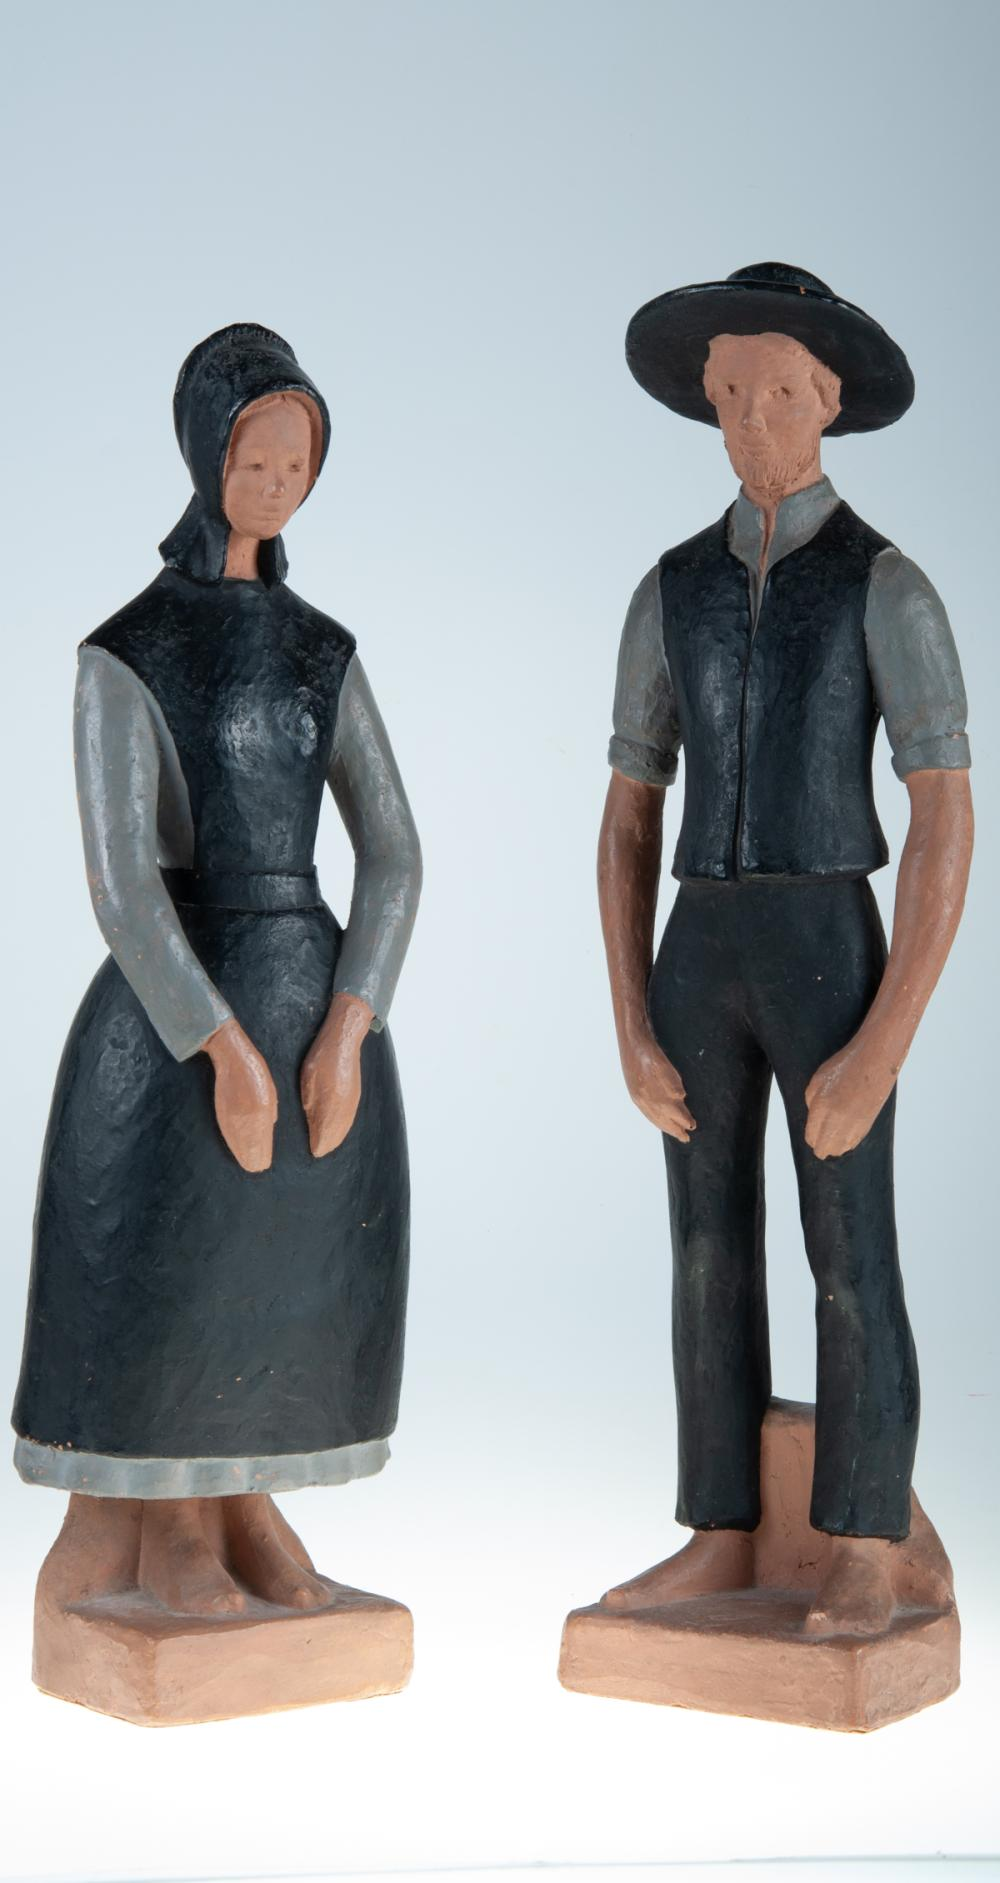 Amish Folk Art Terracotta Figurines Pair, Painted